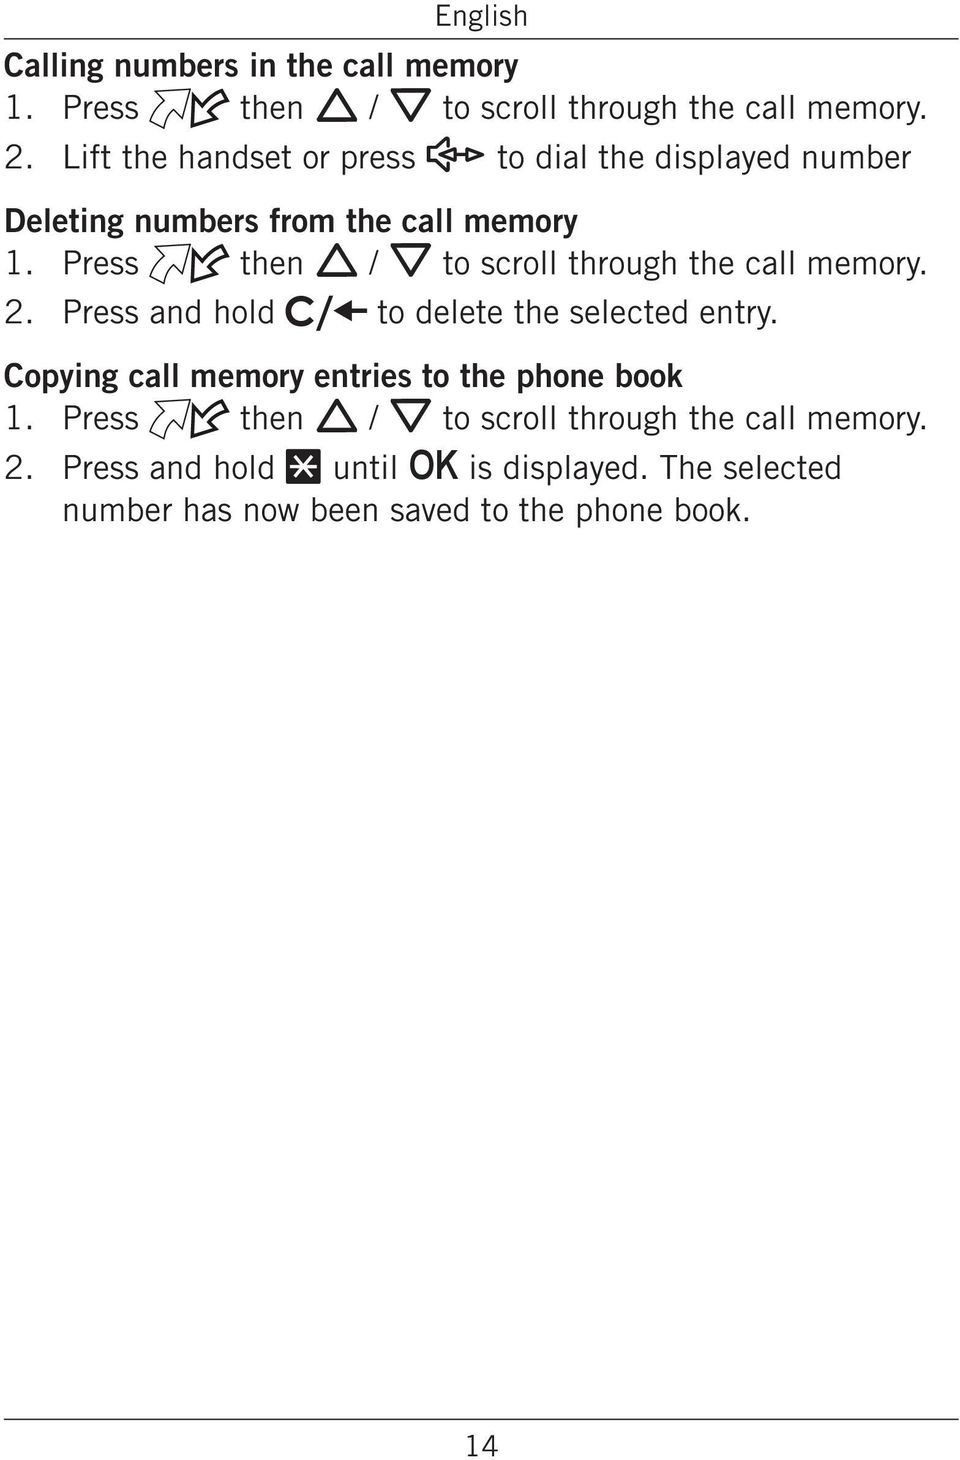 Press and hold to delete the selected entry Copying call memory entries to the phone book 1 Press then v V to scroll